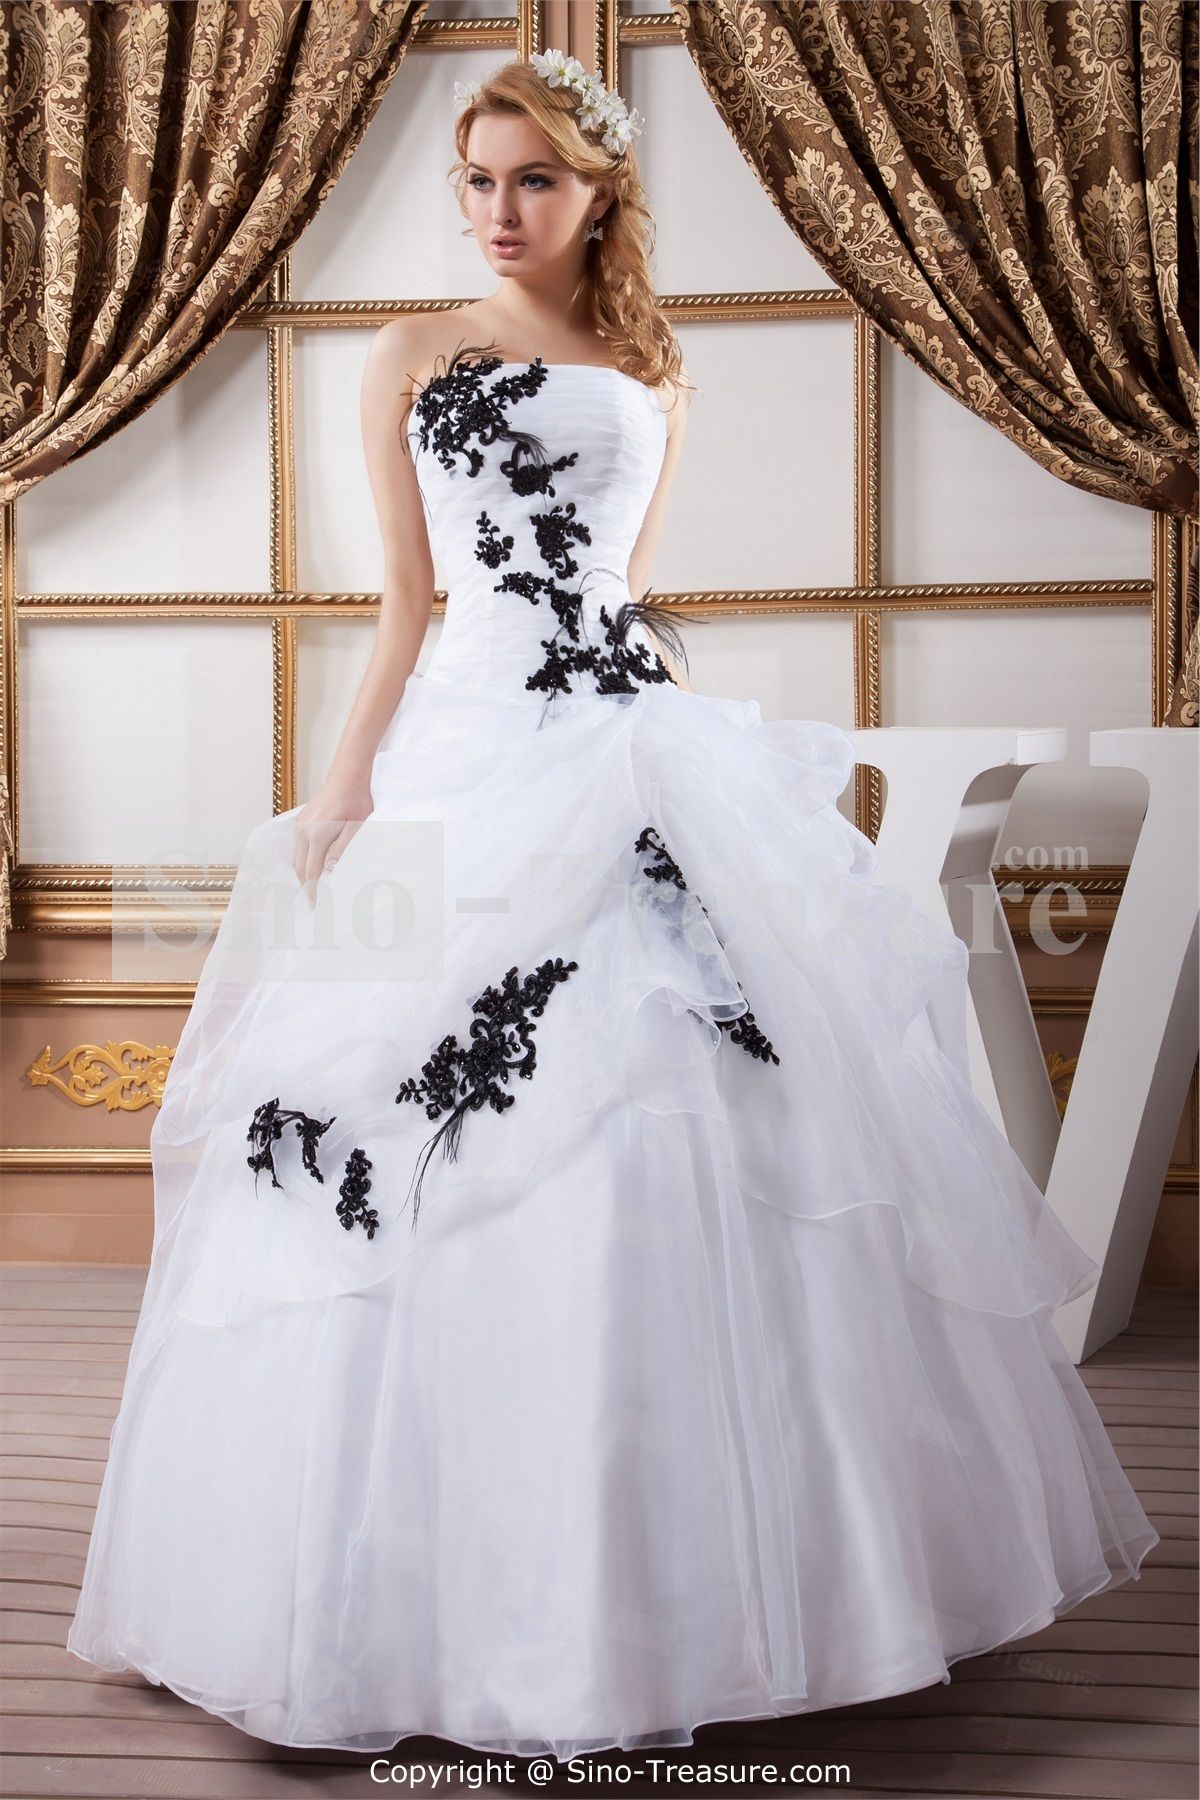 whiteblack hourglass ball gown natural strapless outdoor garden satinorganza wedding dress